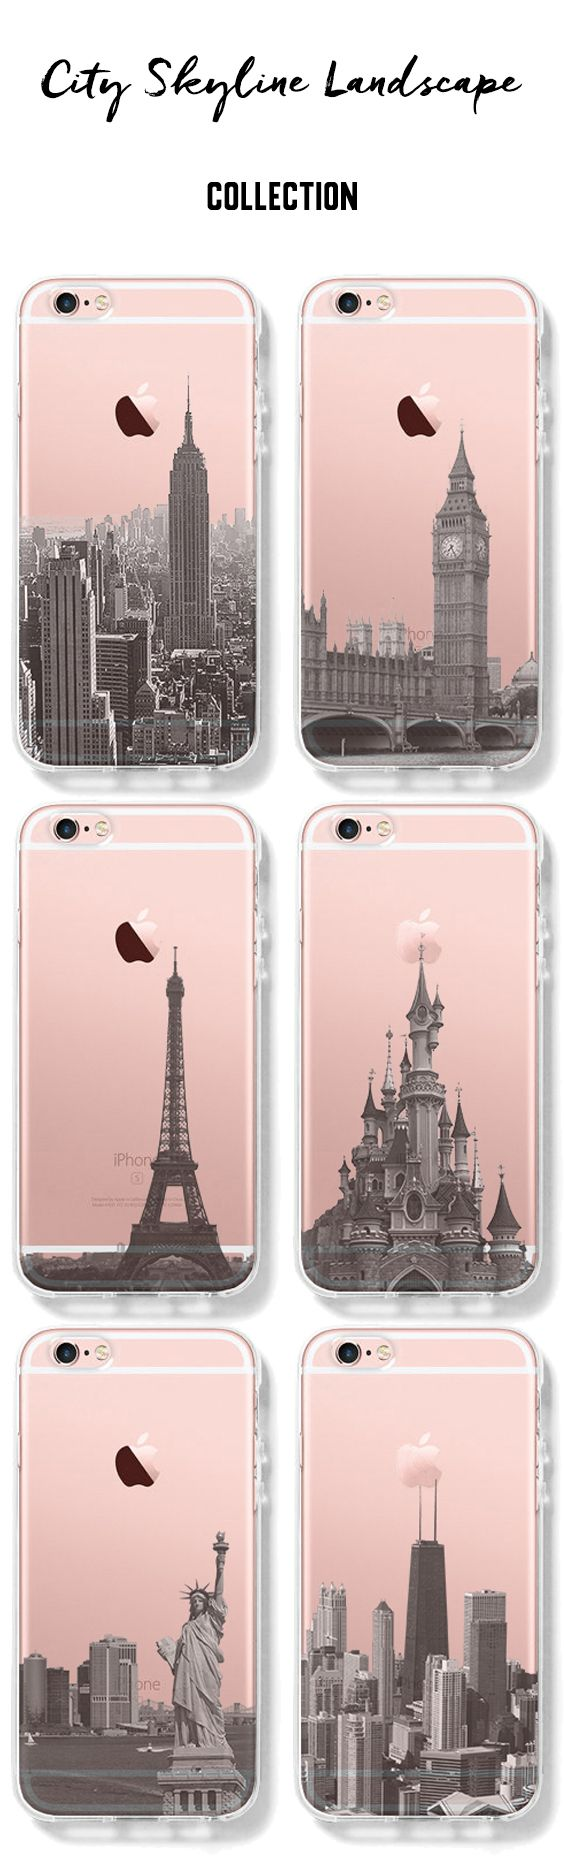 City Skyline Unique design iPhone cases Cell Phones & Accessories - Cell Phone, Cases & Covers - http://amzn.to/2jXZVL6 http://amzn.to/2rsh3Be